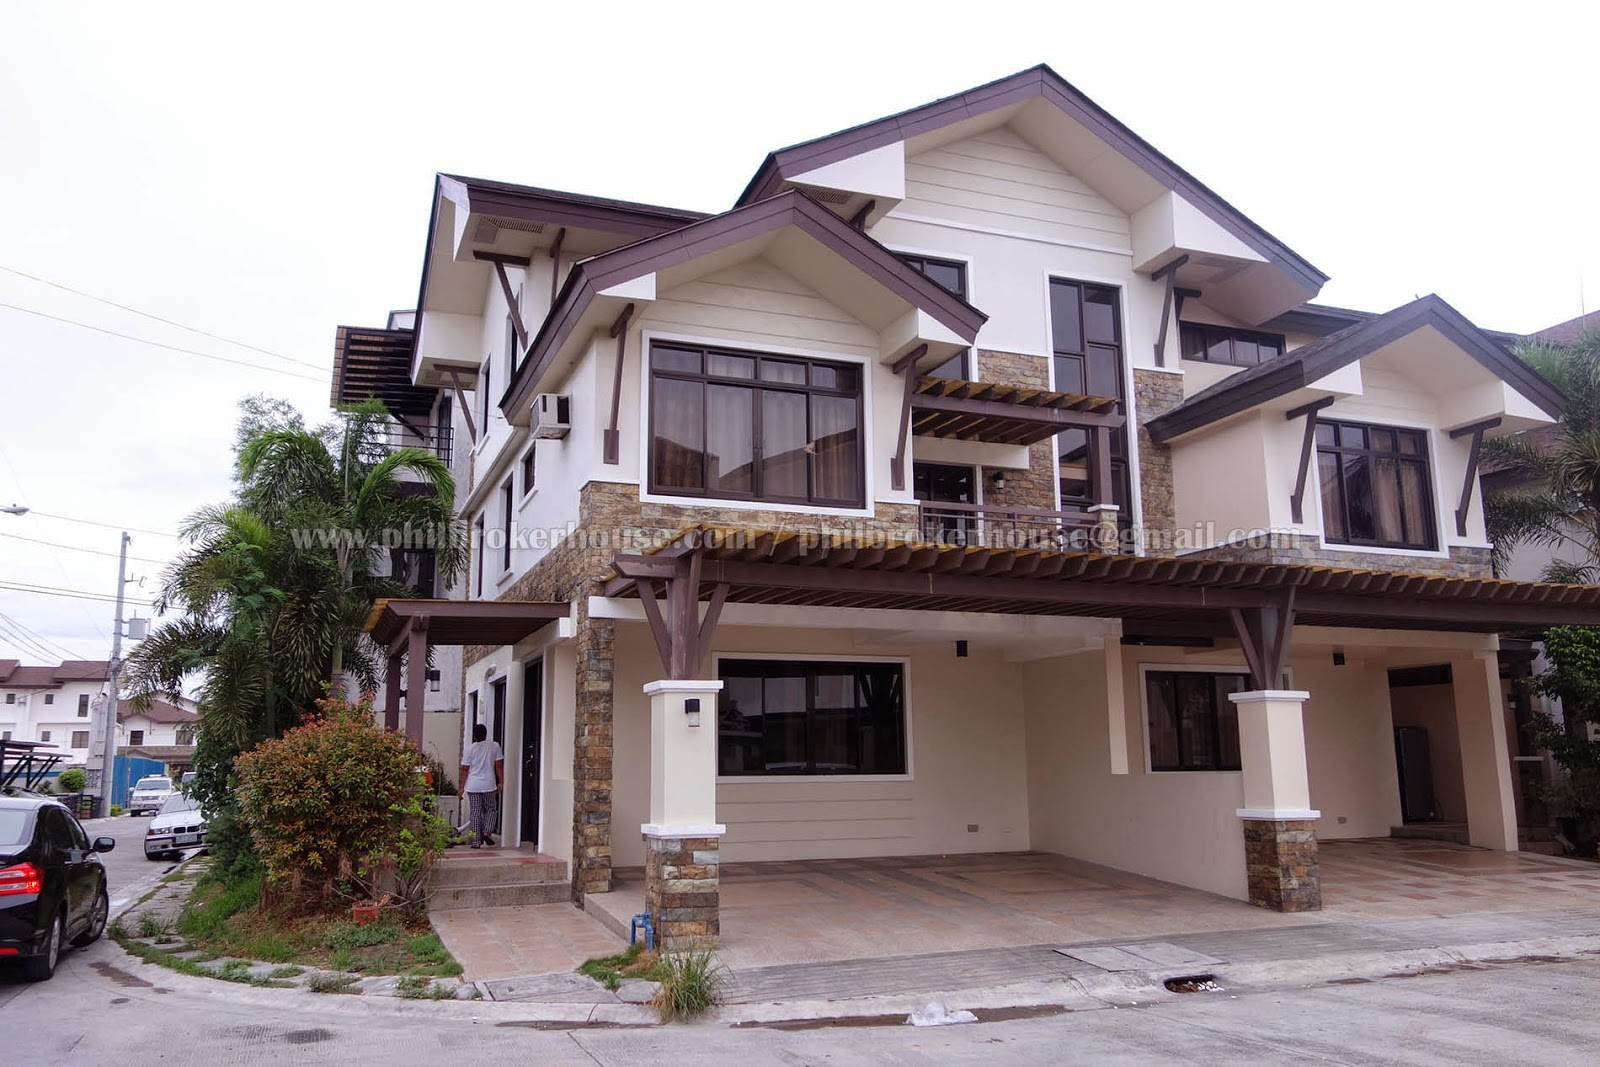 Sofa Set For Sale Bulacan Philbrokerhouse For Rent Duplex Townhouse In Mahogany